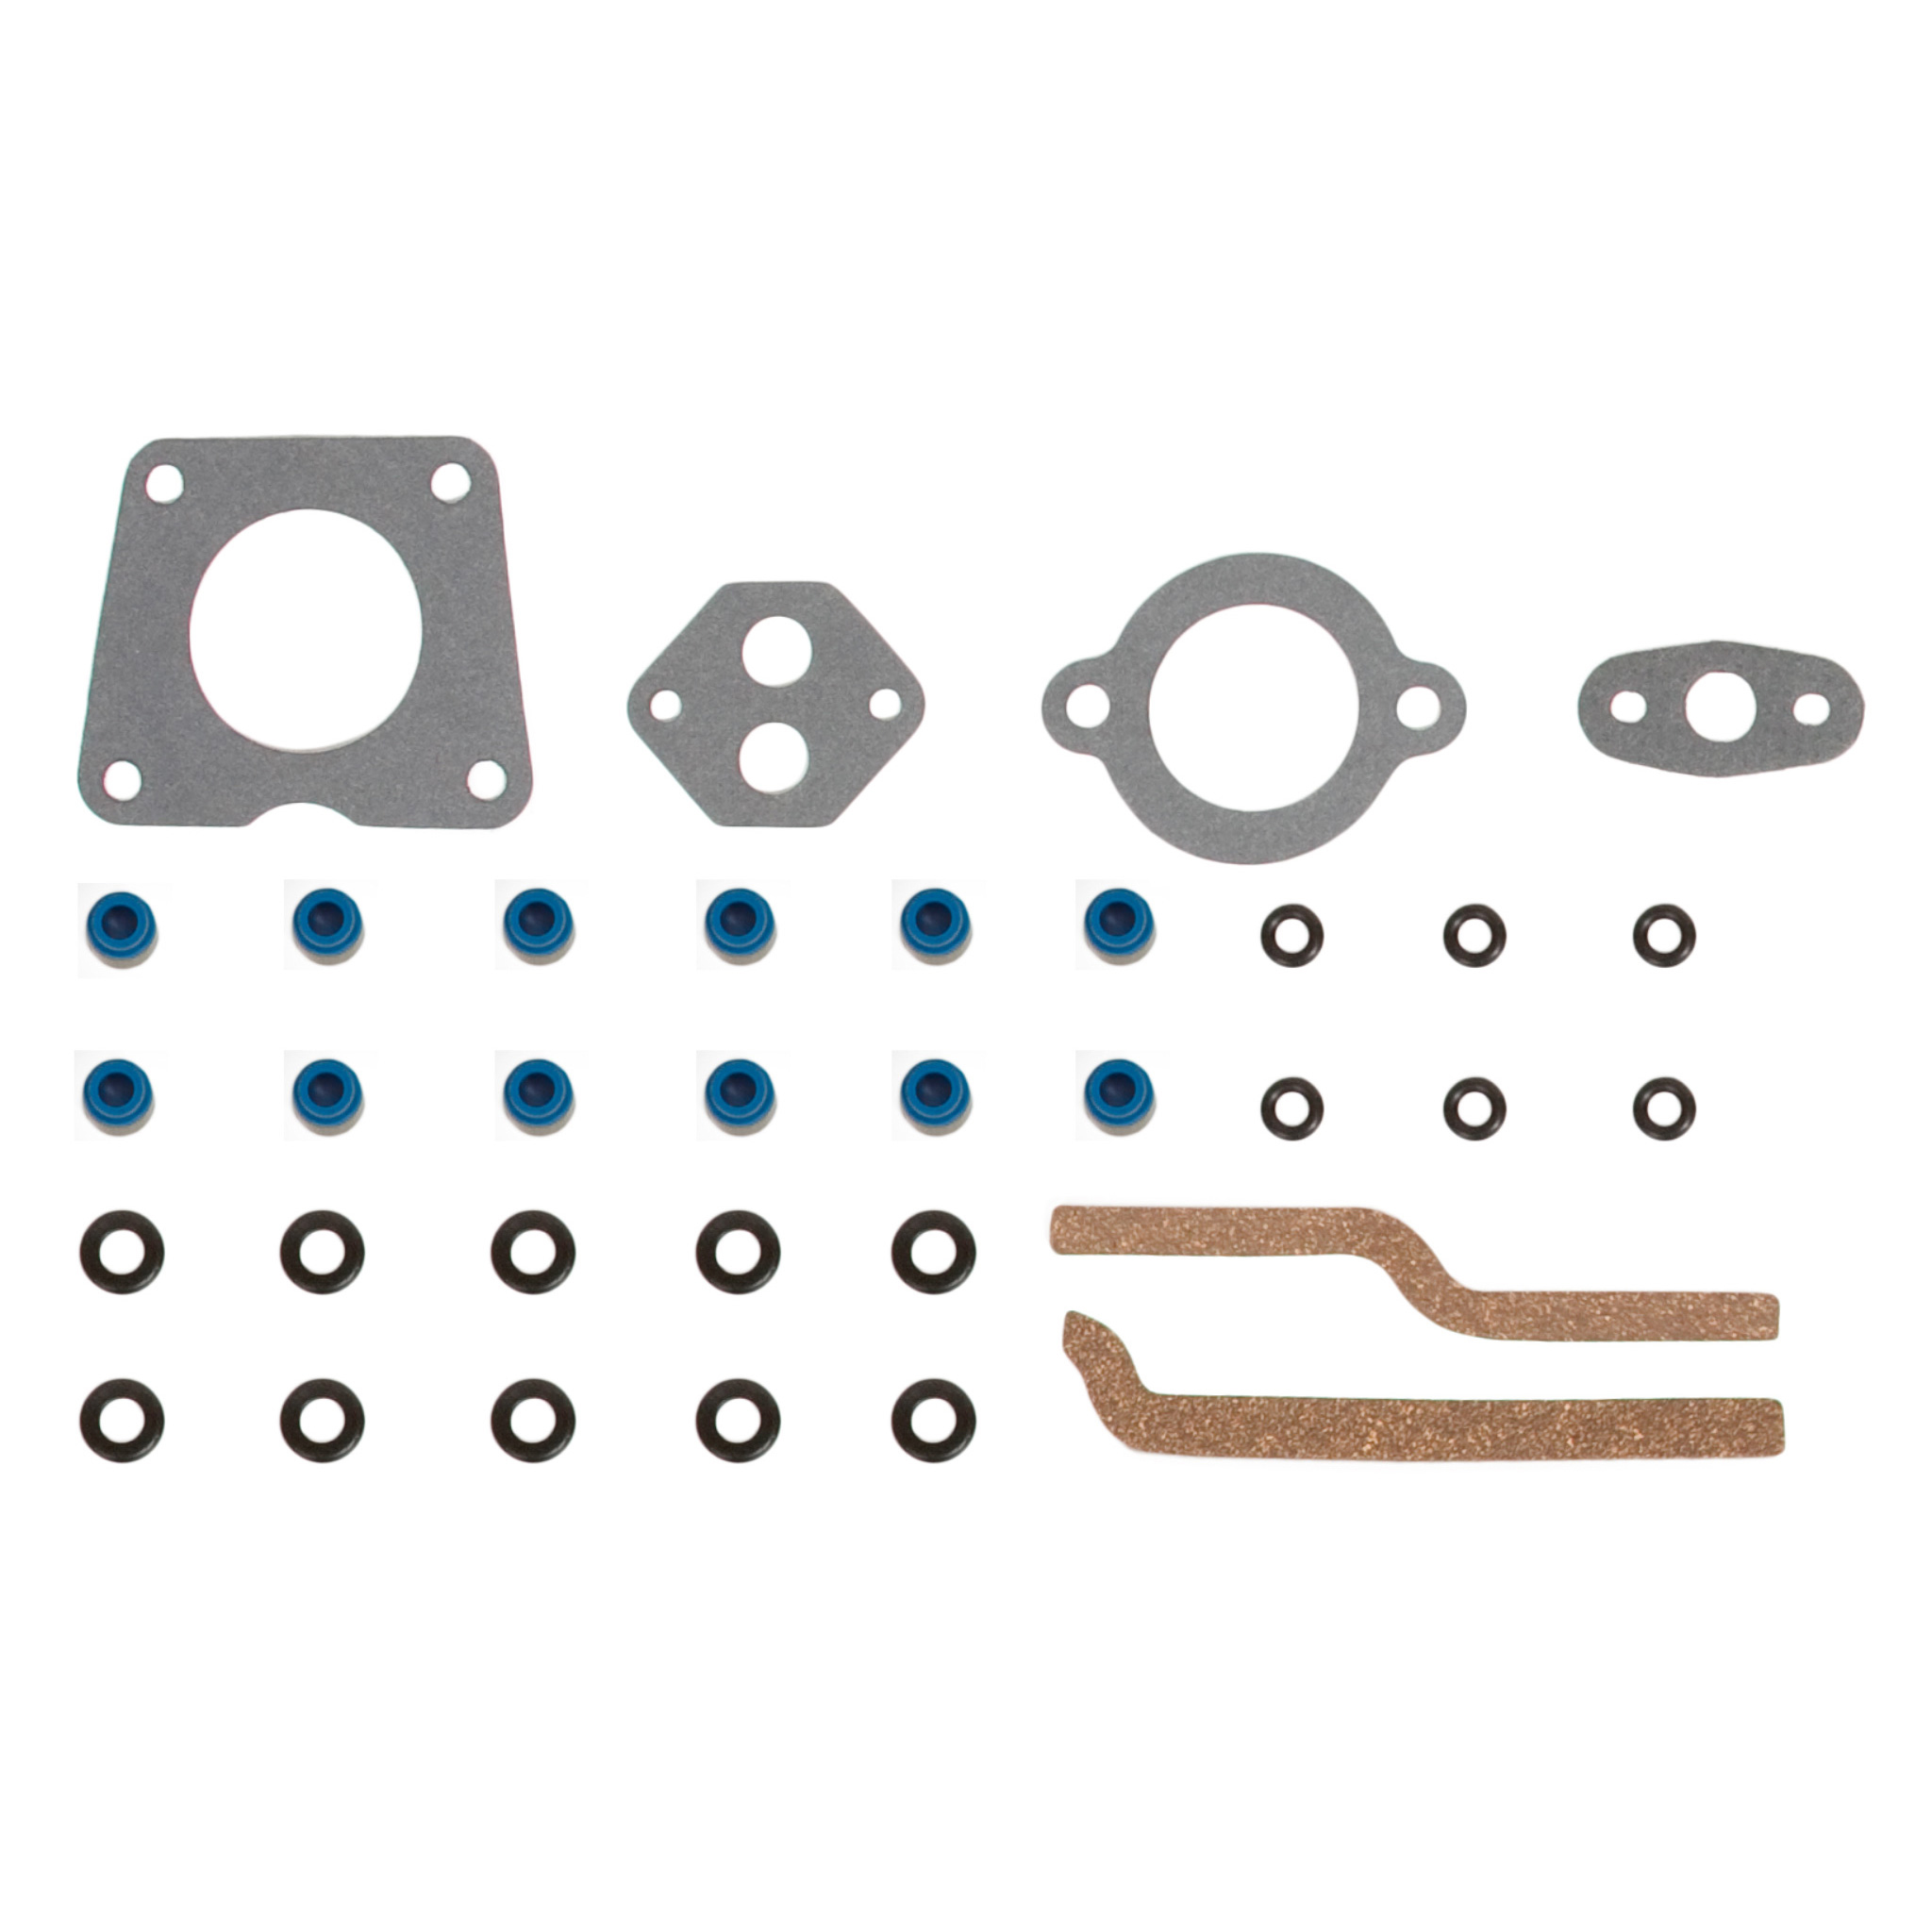 94-95 Ford Windstar Sable Taurus 3.8L OHV VIN 4 w//FWD Head Gasket Set Bolt Kit Fits